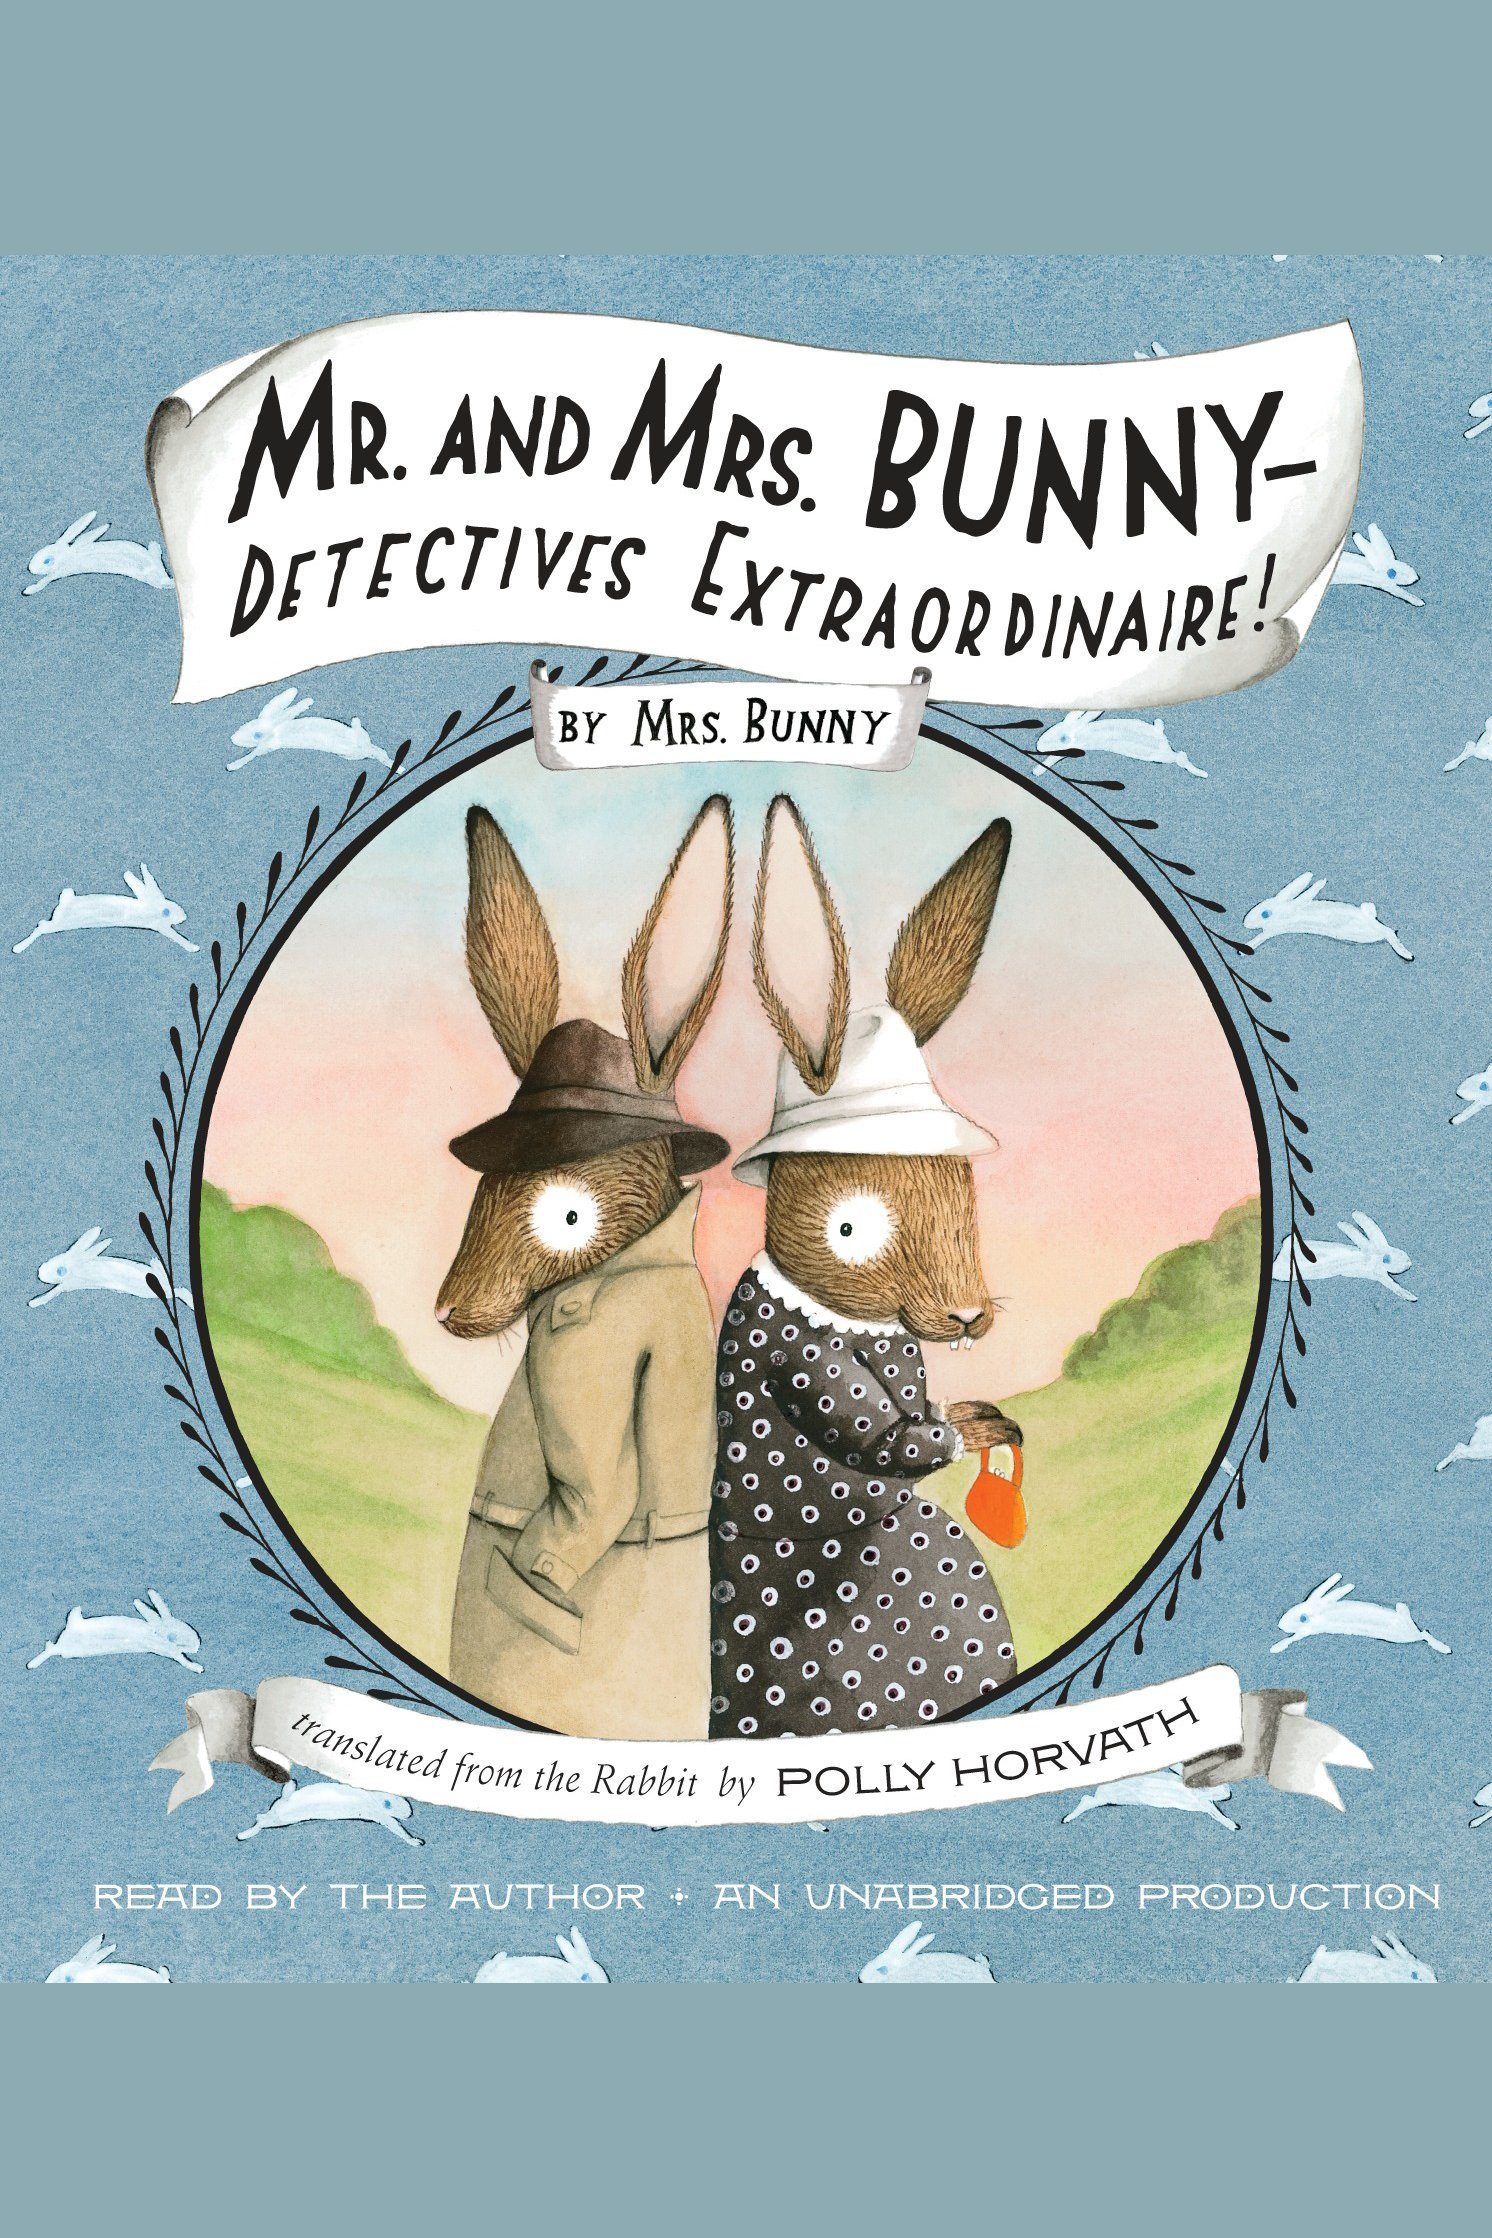 Mr. and Mrs. Bunny--detectives extraordinaire! cover image